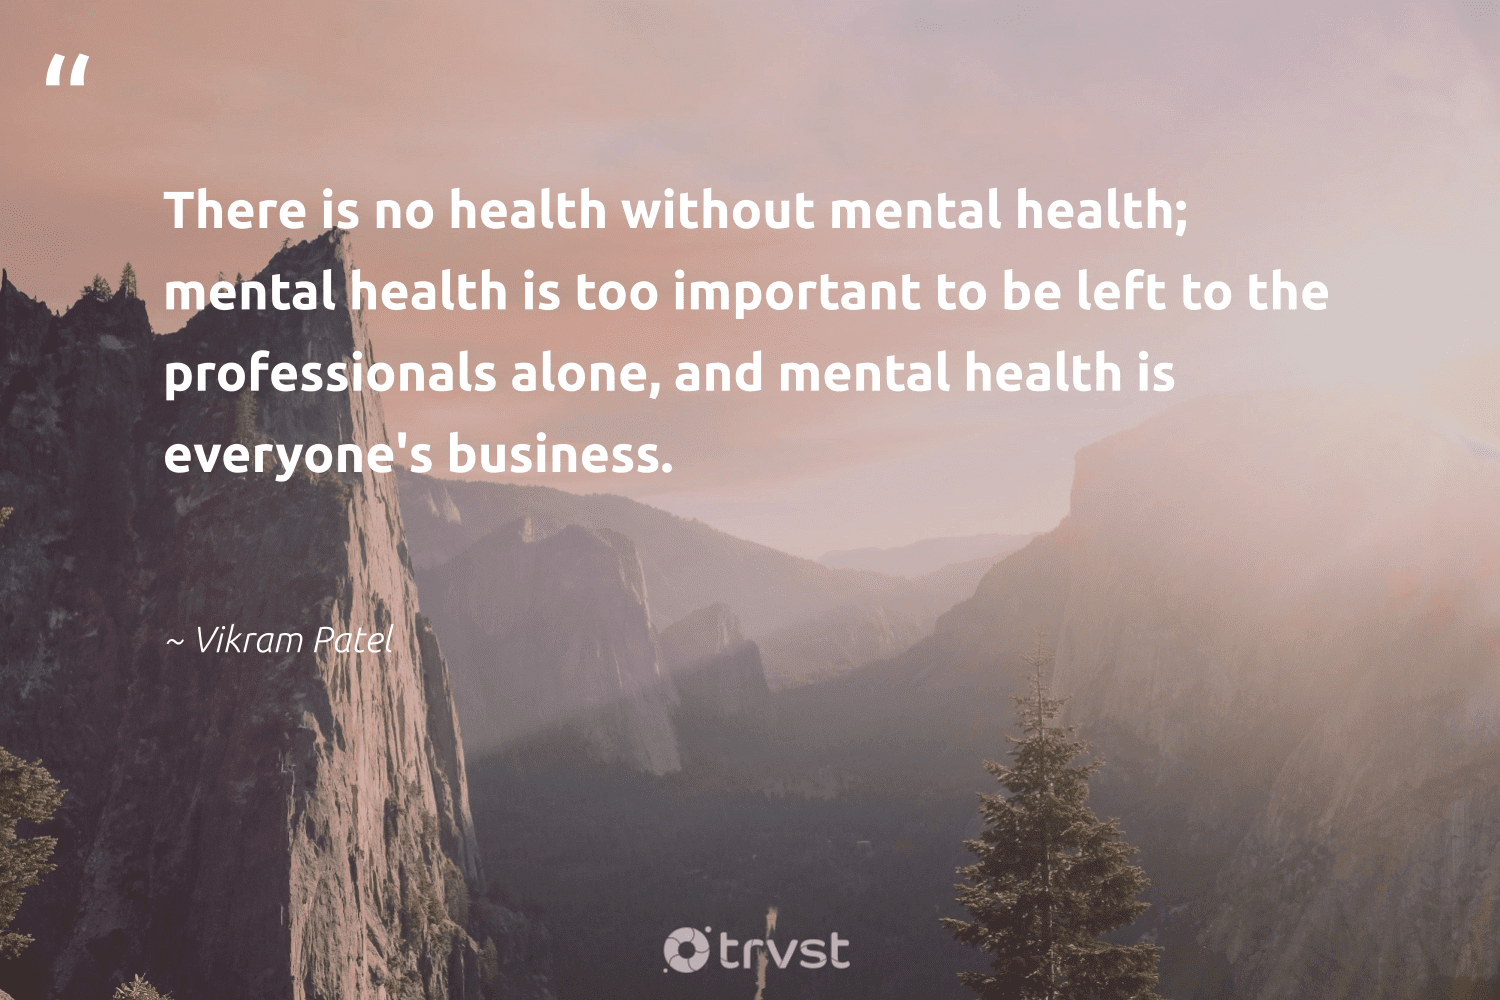 """""""There is no health without mental health; mental health is too important to be left to the professionals alone, and mental health is everyone's business.""""  - Vikram Patel #trvst #quotes #mentalhealth #health #depression #begreat #changemakers #dogood #mentalhealthmatters #togetherwecan #mindset #socialimpact"""